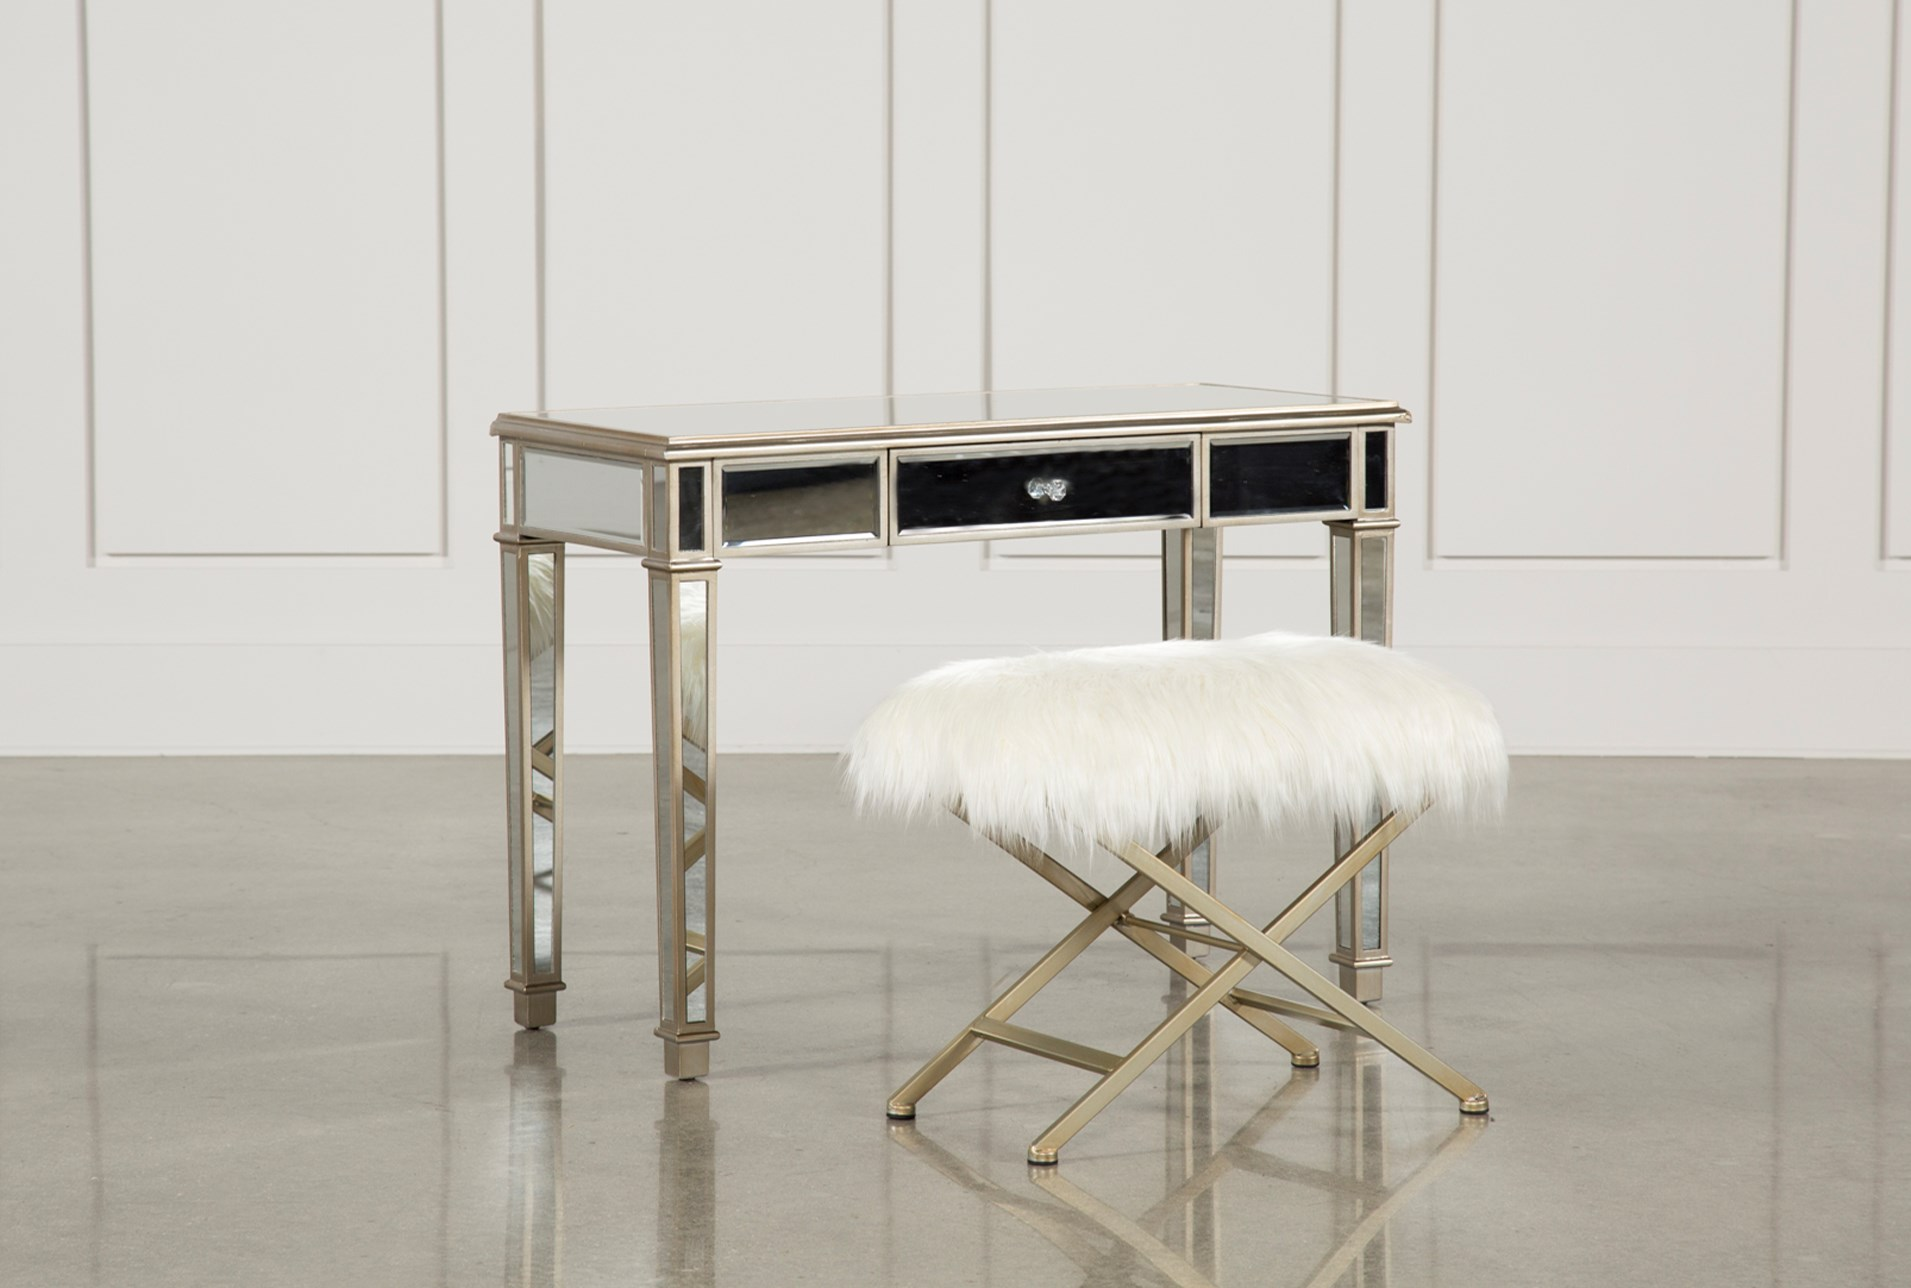 Hayworth Mirrored Vanity Desk W Bench Qty 1 Has Been Successfully Added To Your Cart